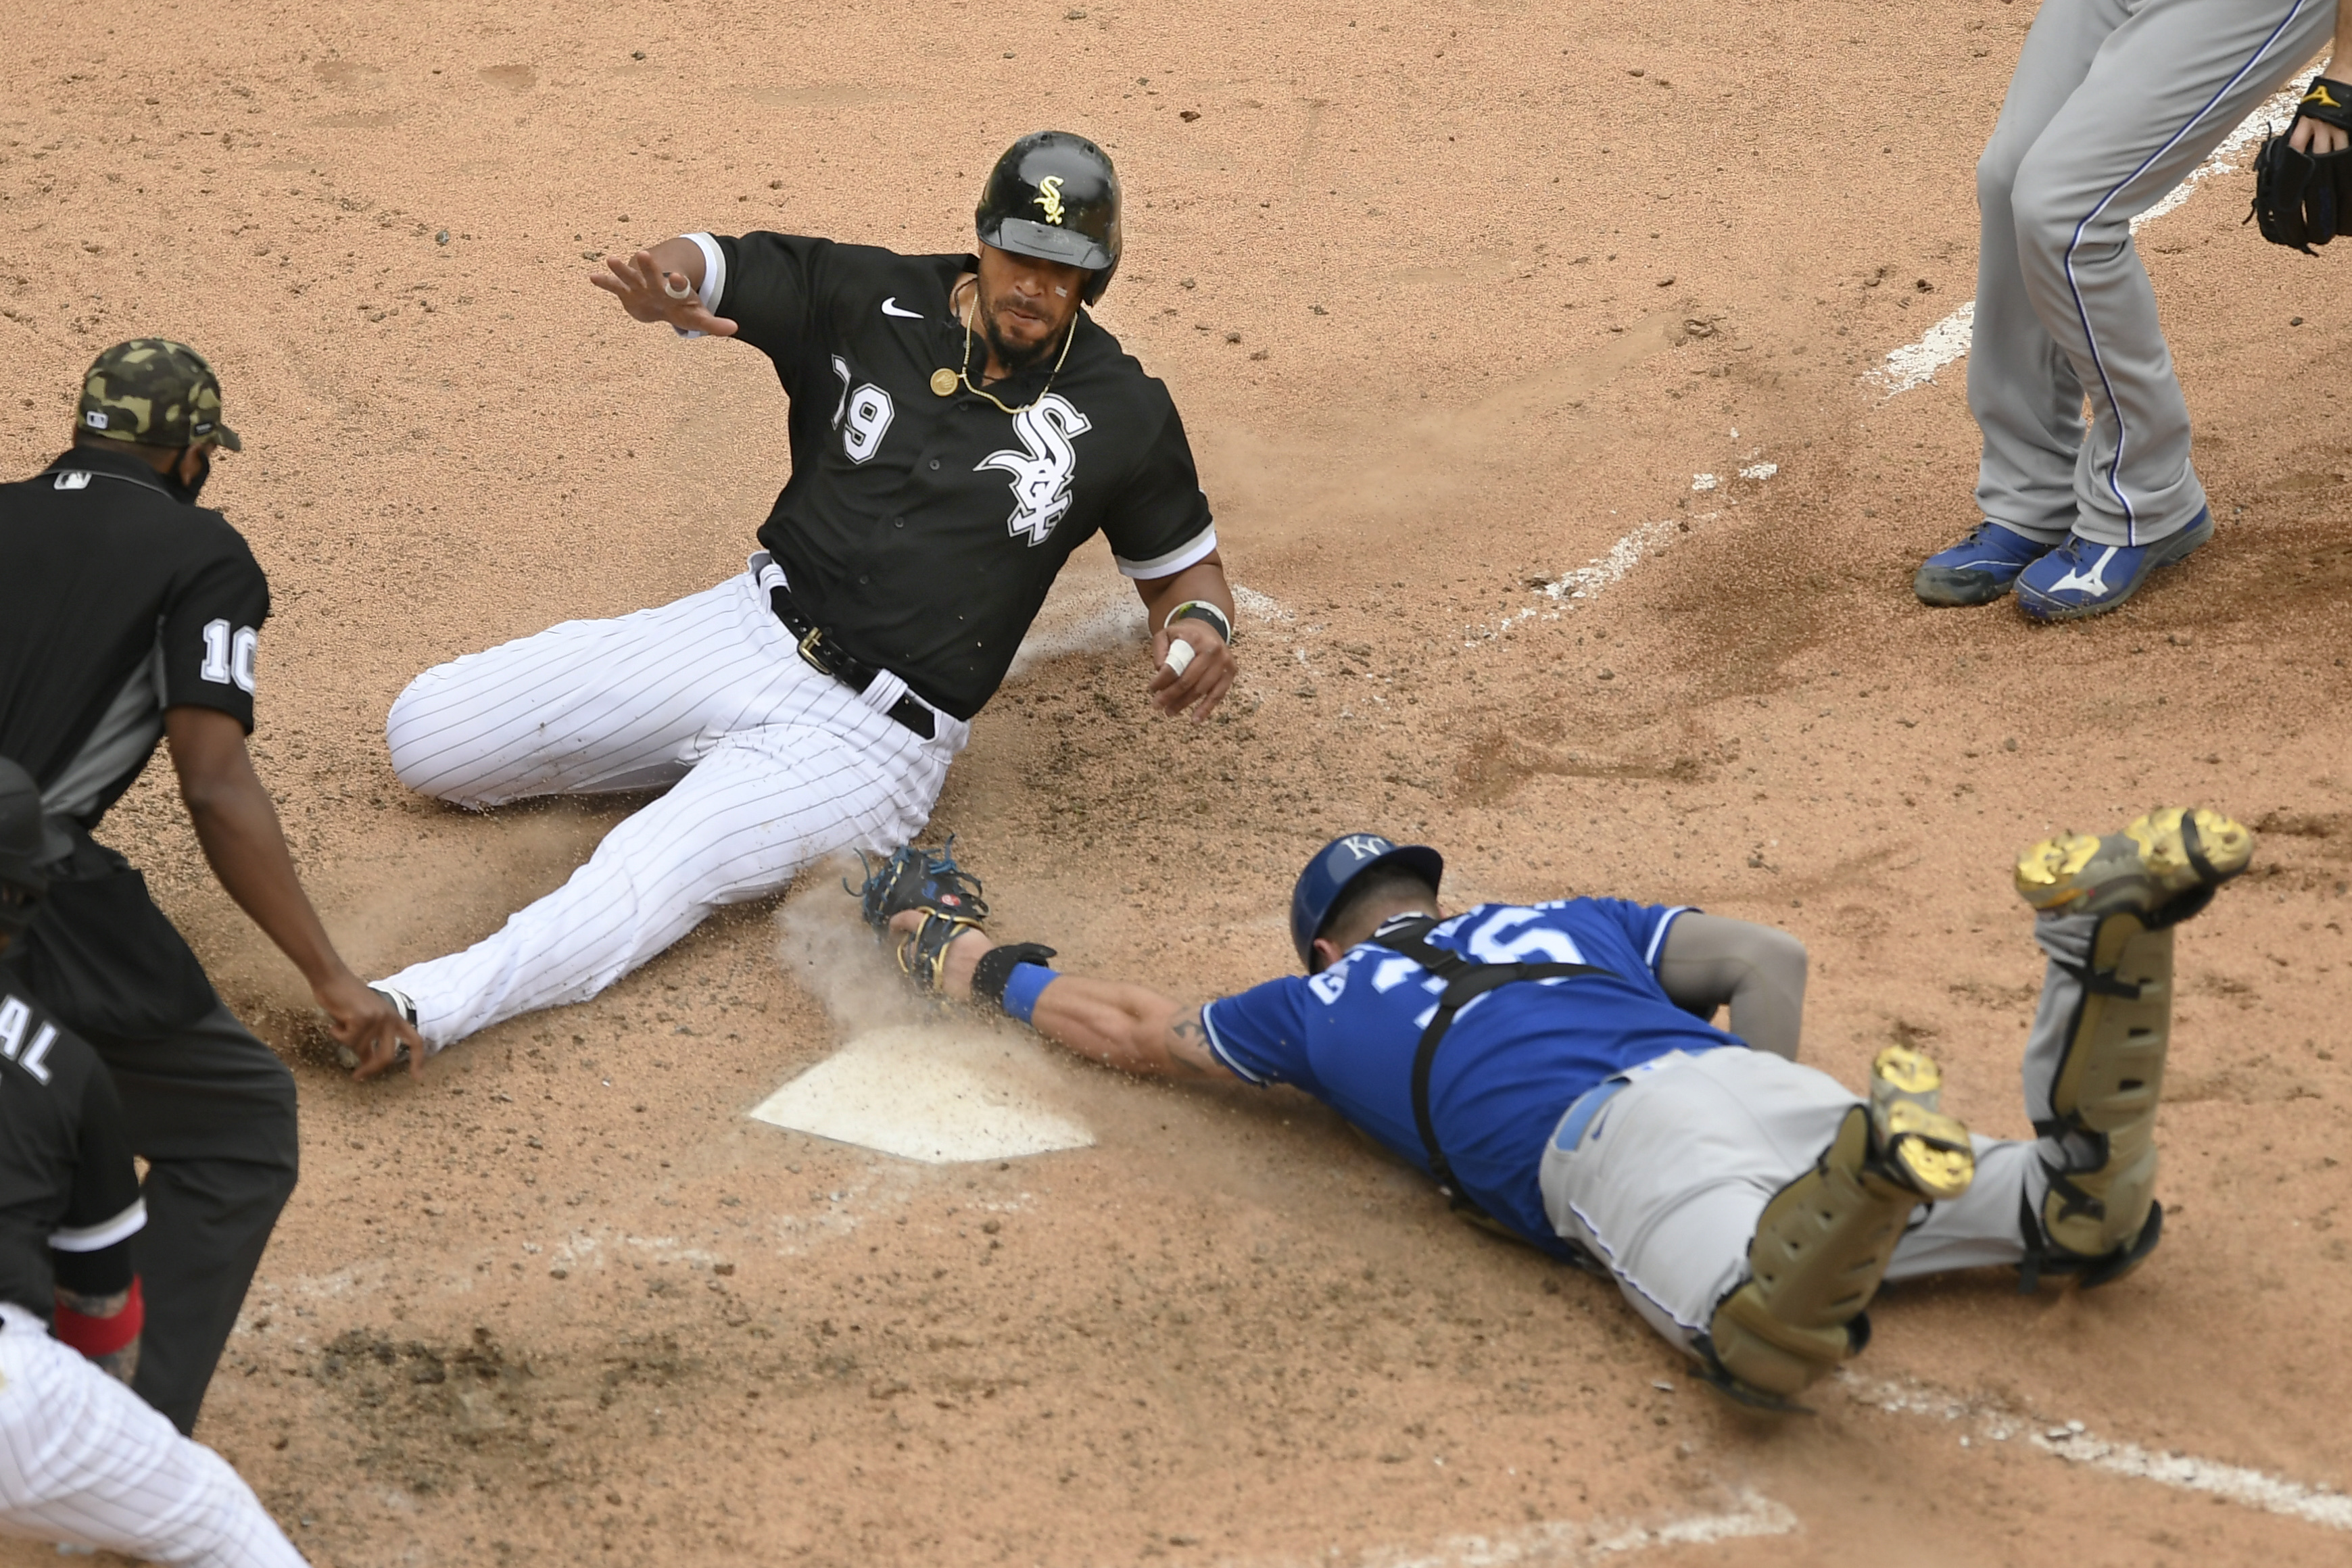 The White Sox' Jose Abreu slides safely into home plate while Royals catcher Cam Gallagher attempts to apply the tag during the ninth inning of Sunday's game.